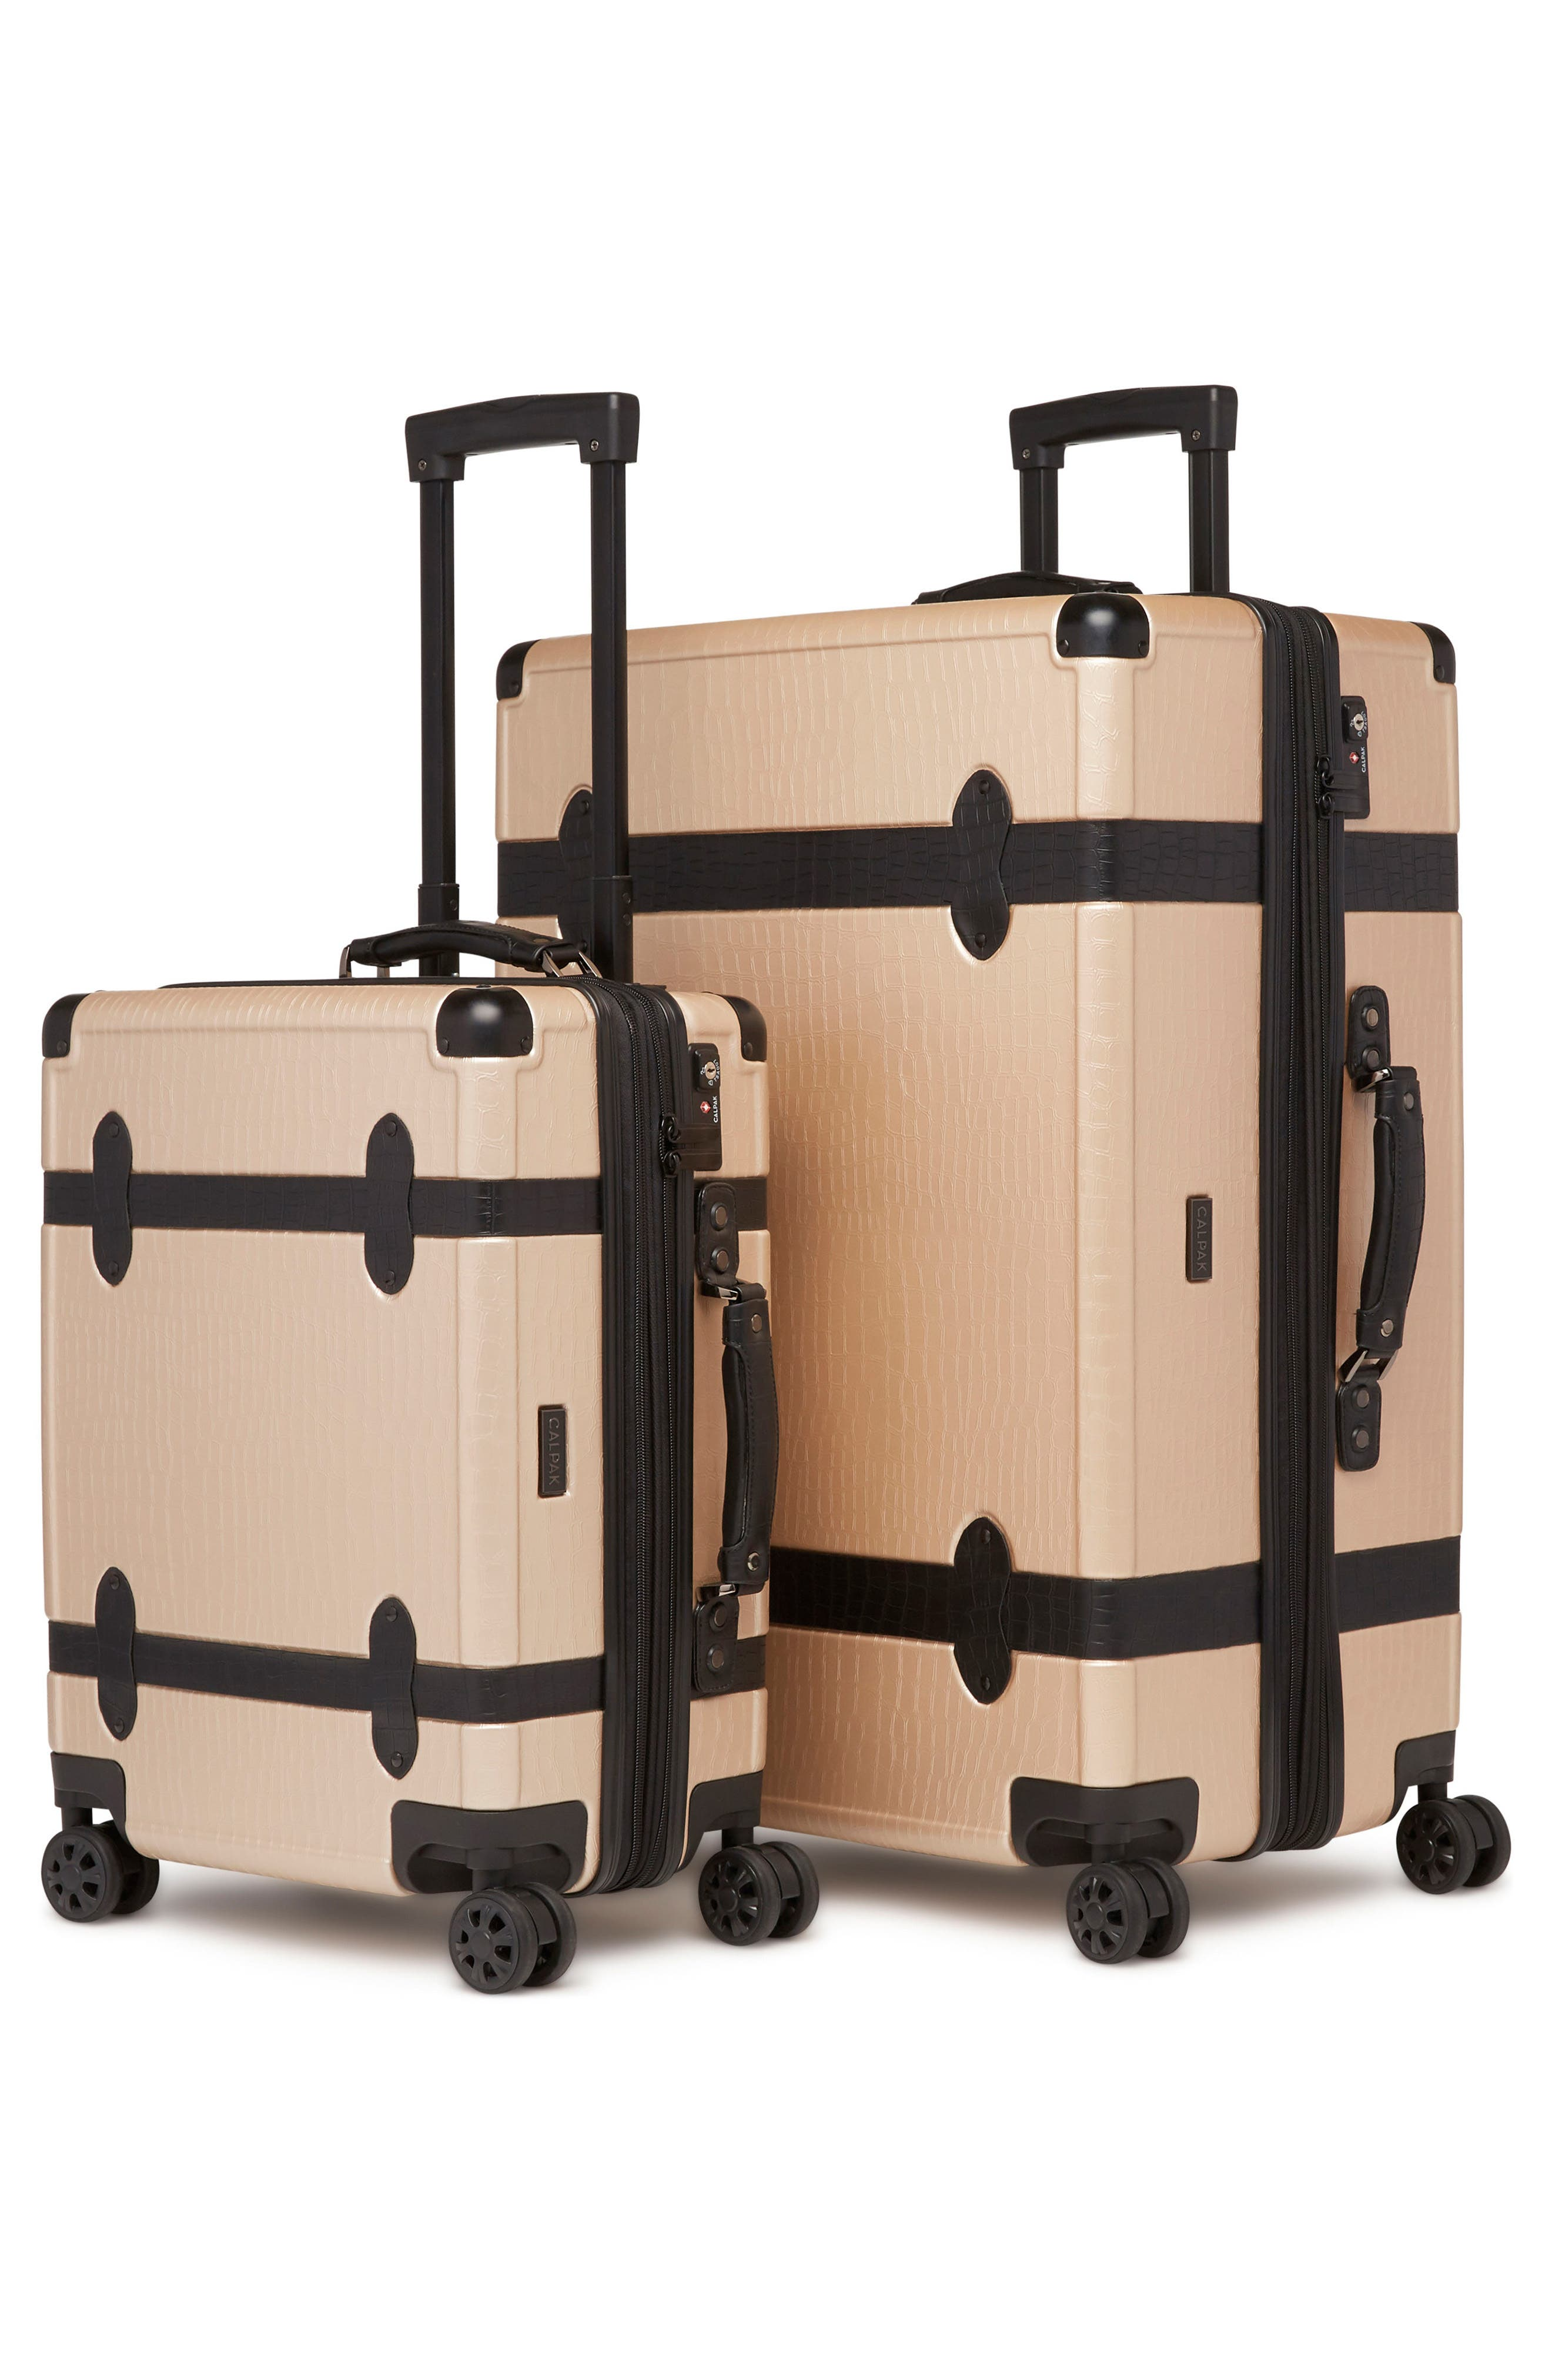 20-Inch & 28-Inch Trunk Rolling Luggage Set,                             Alternate thumbnail 4, color,                             Nude